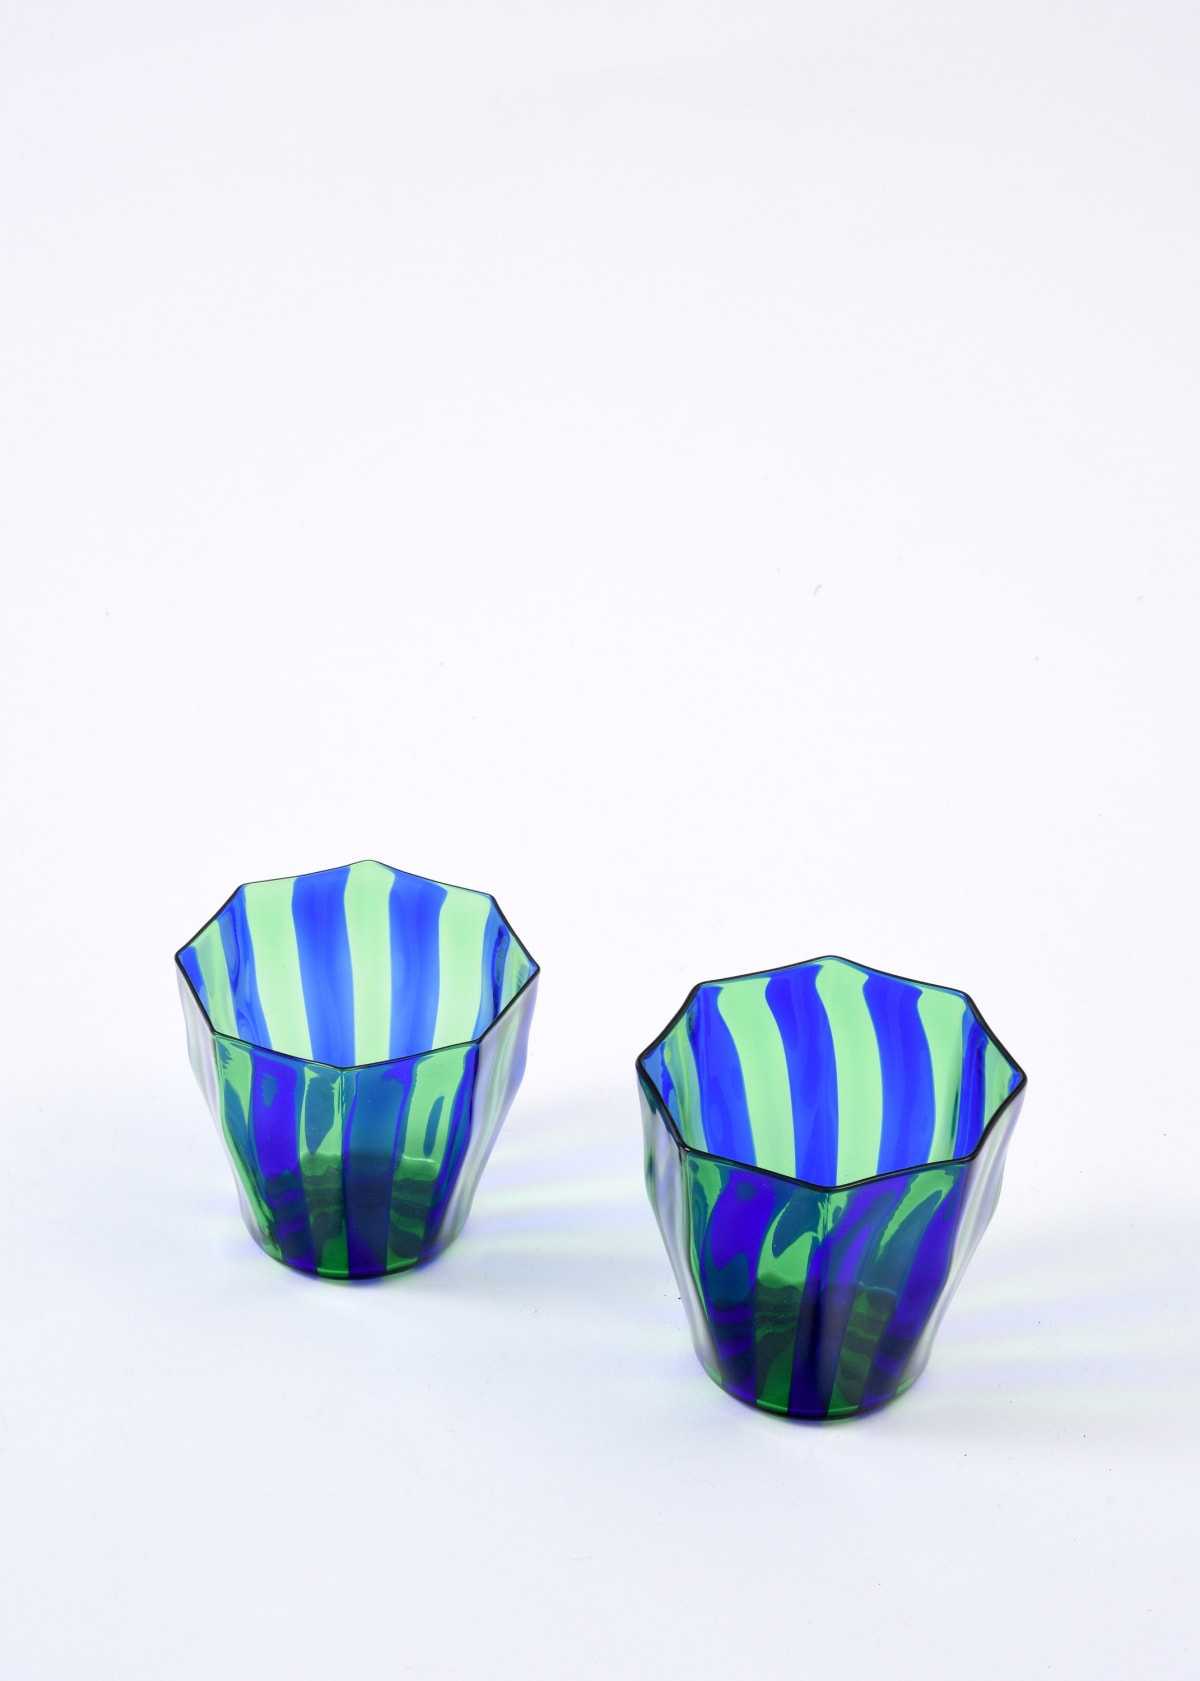 Campbell-Rey Green and blue 'Rosanna' Murano tumbler Coloured Murano glass Height 8 cm Available in red and amber, red and blue, amber and turquoise, green and blue, green and turquoise. Made to order, lead time 4-6 weeks